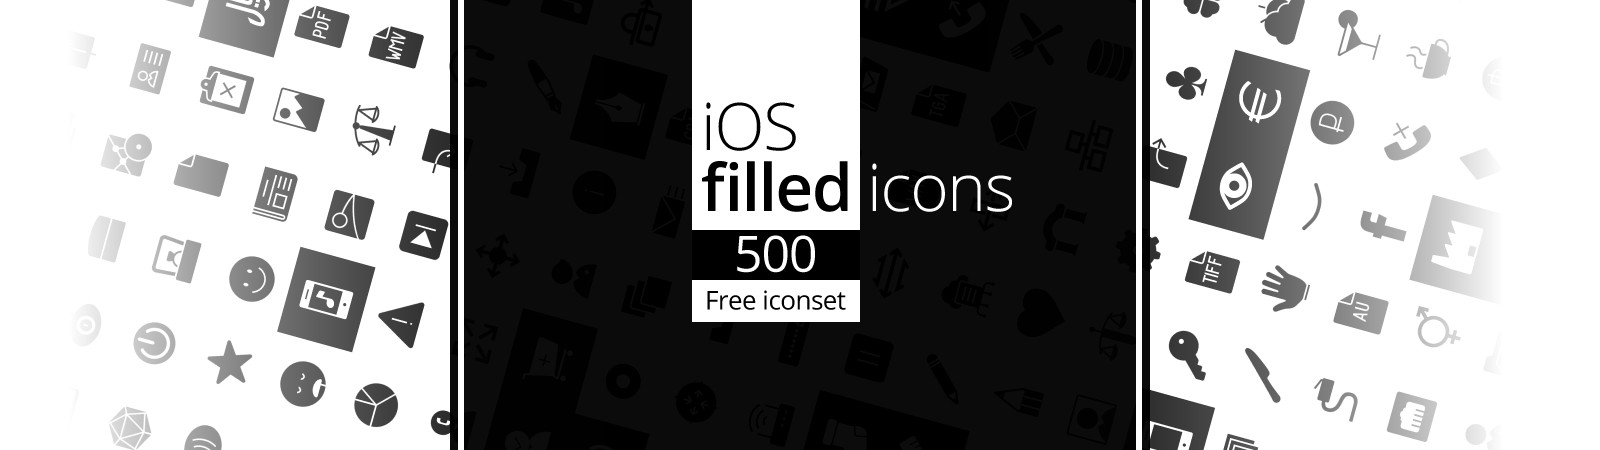 ios_filled_free_icons